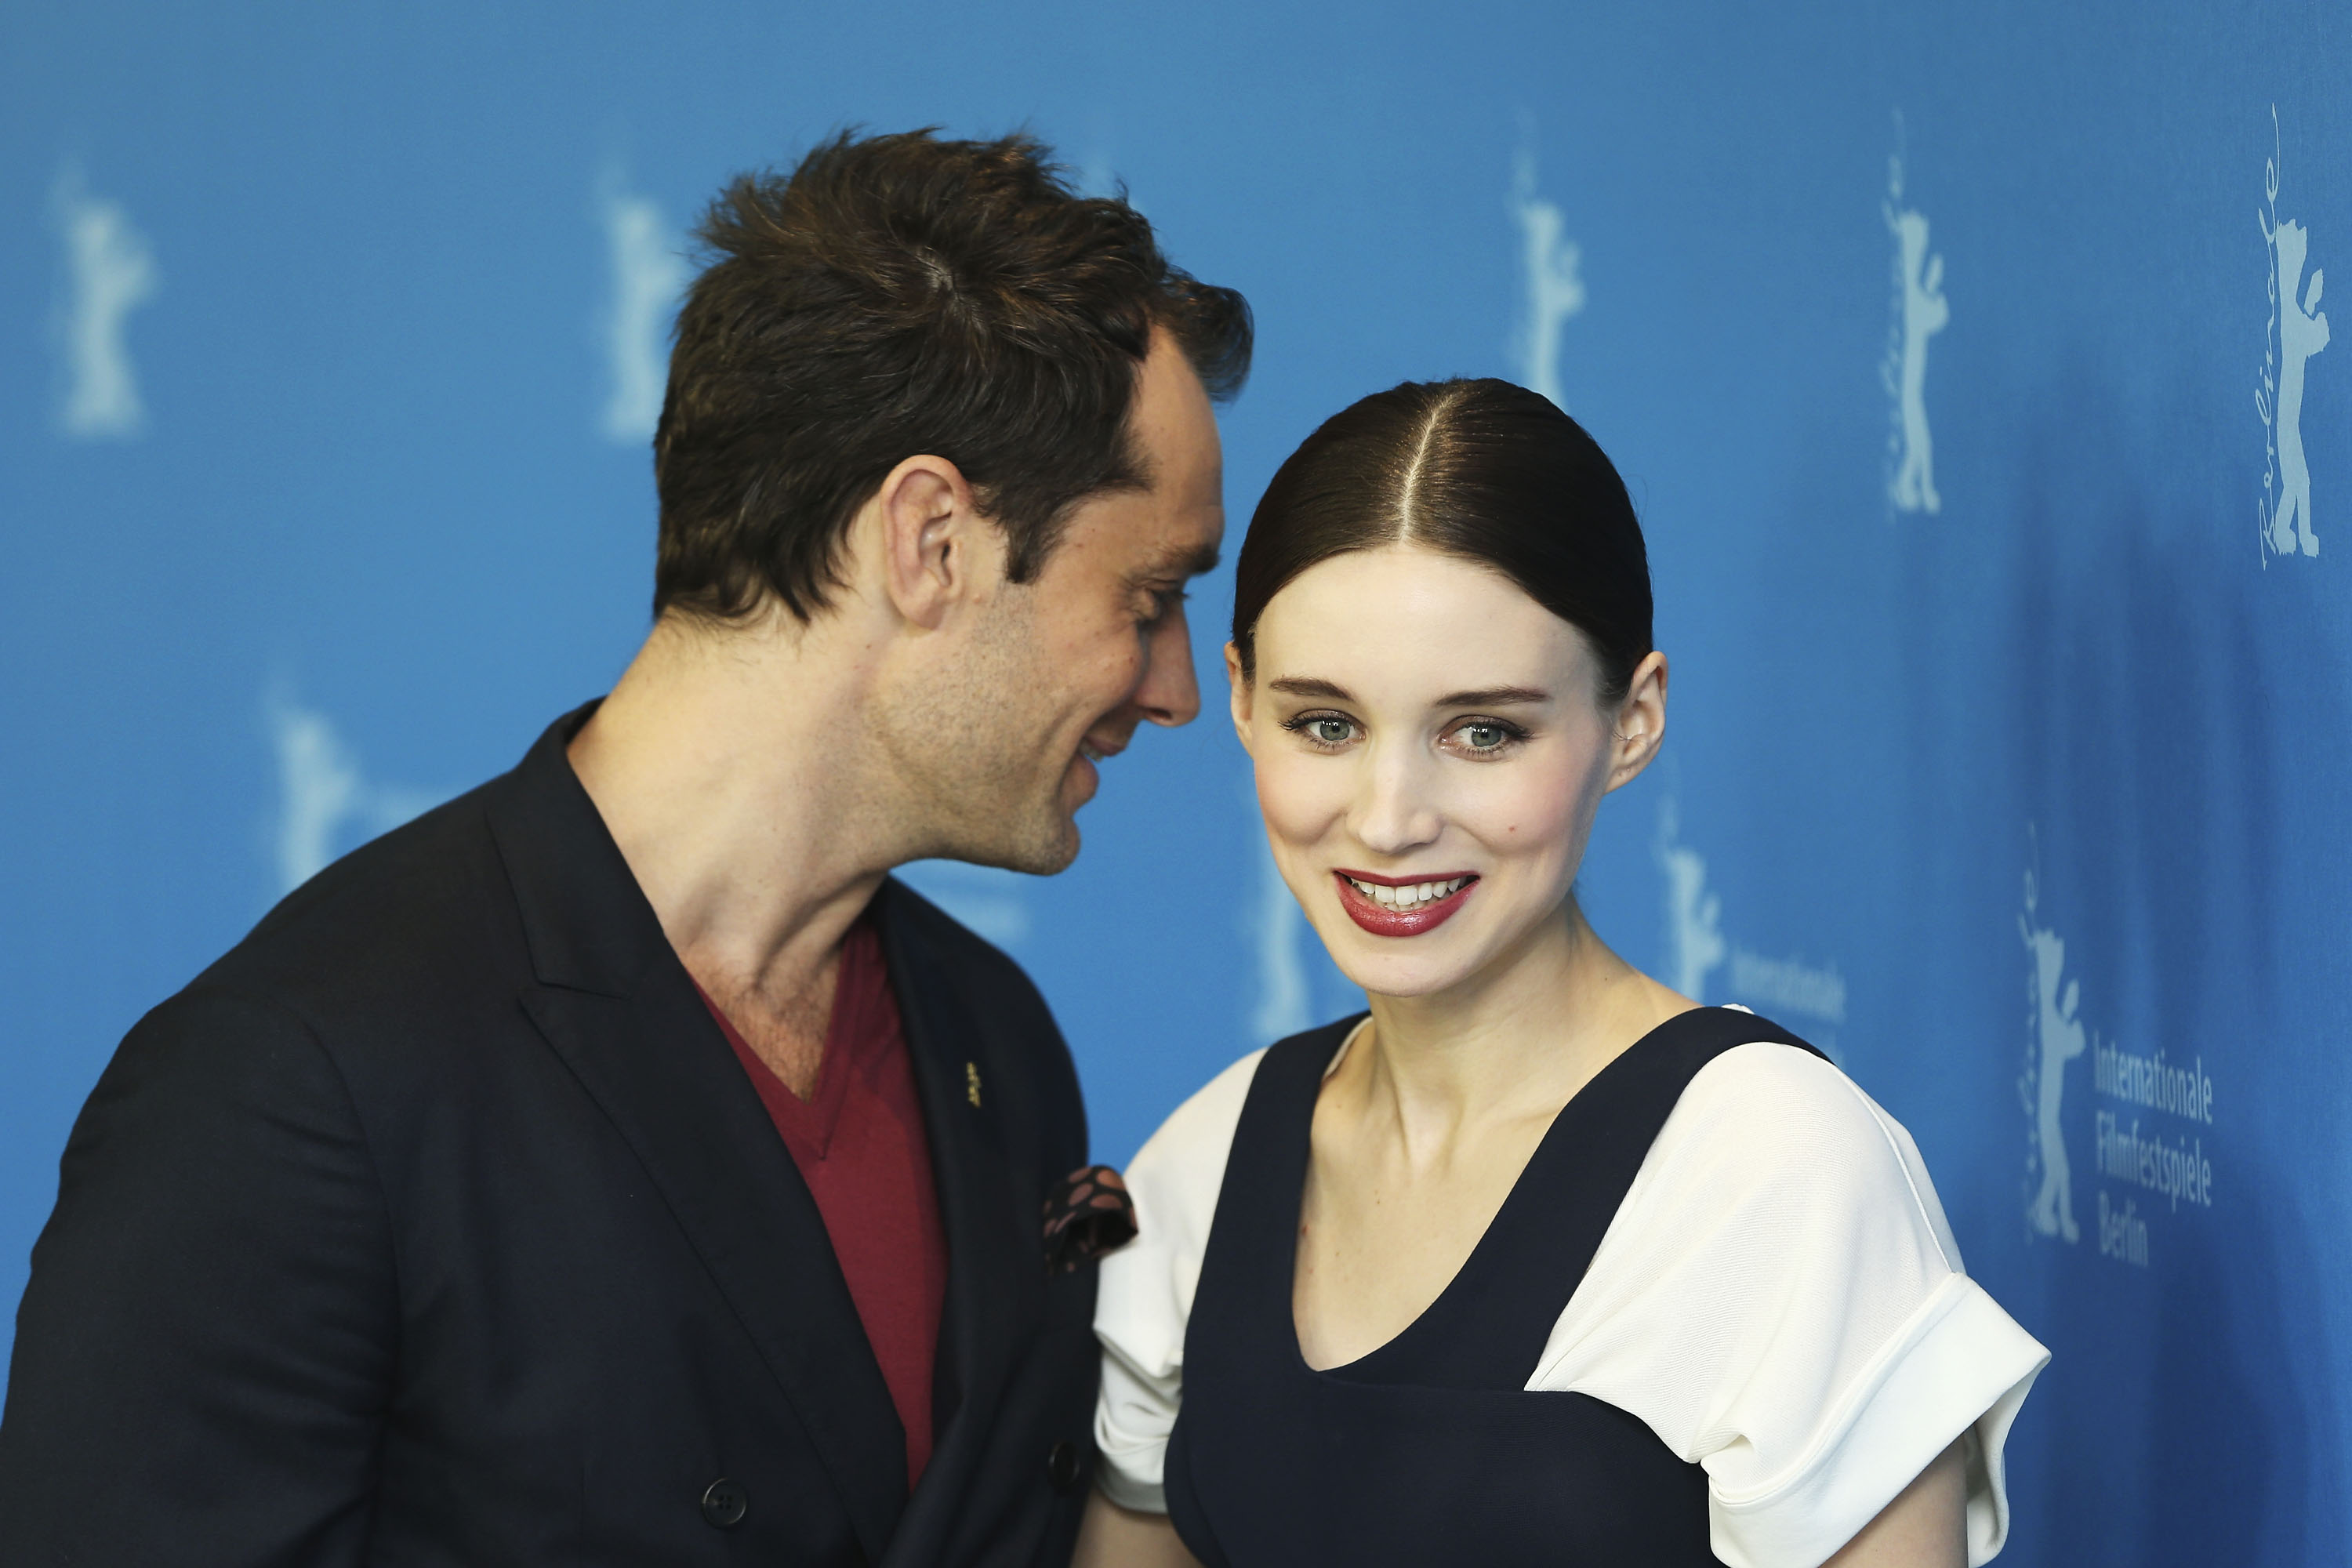 Jude Law chatted with Rooney Mara at the photocall for Side Effects on Tuesday at the Berlin Film Festival.